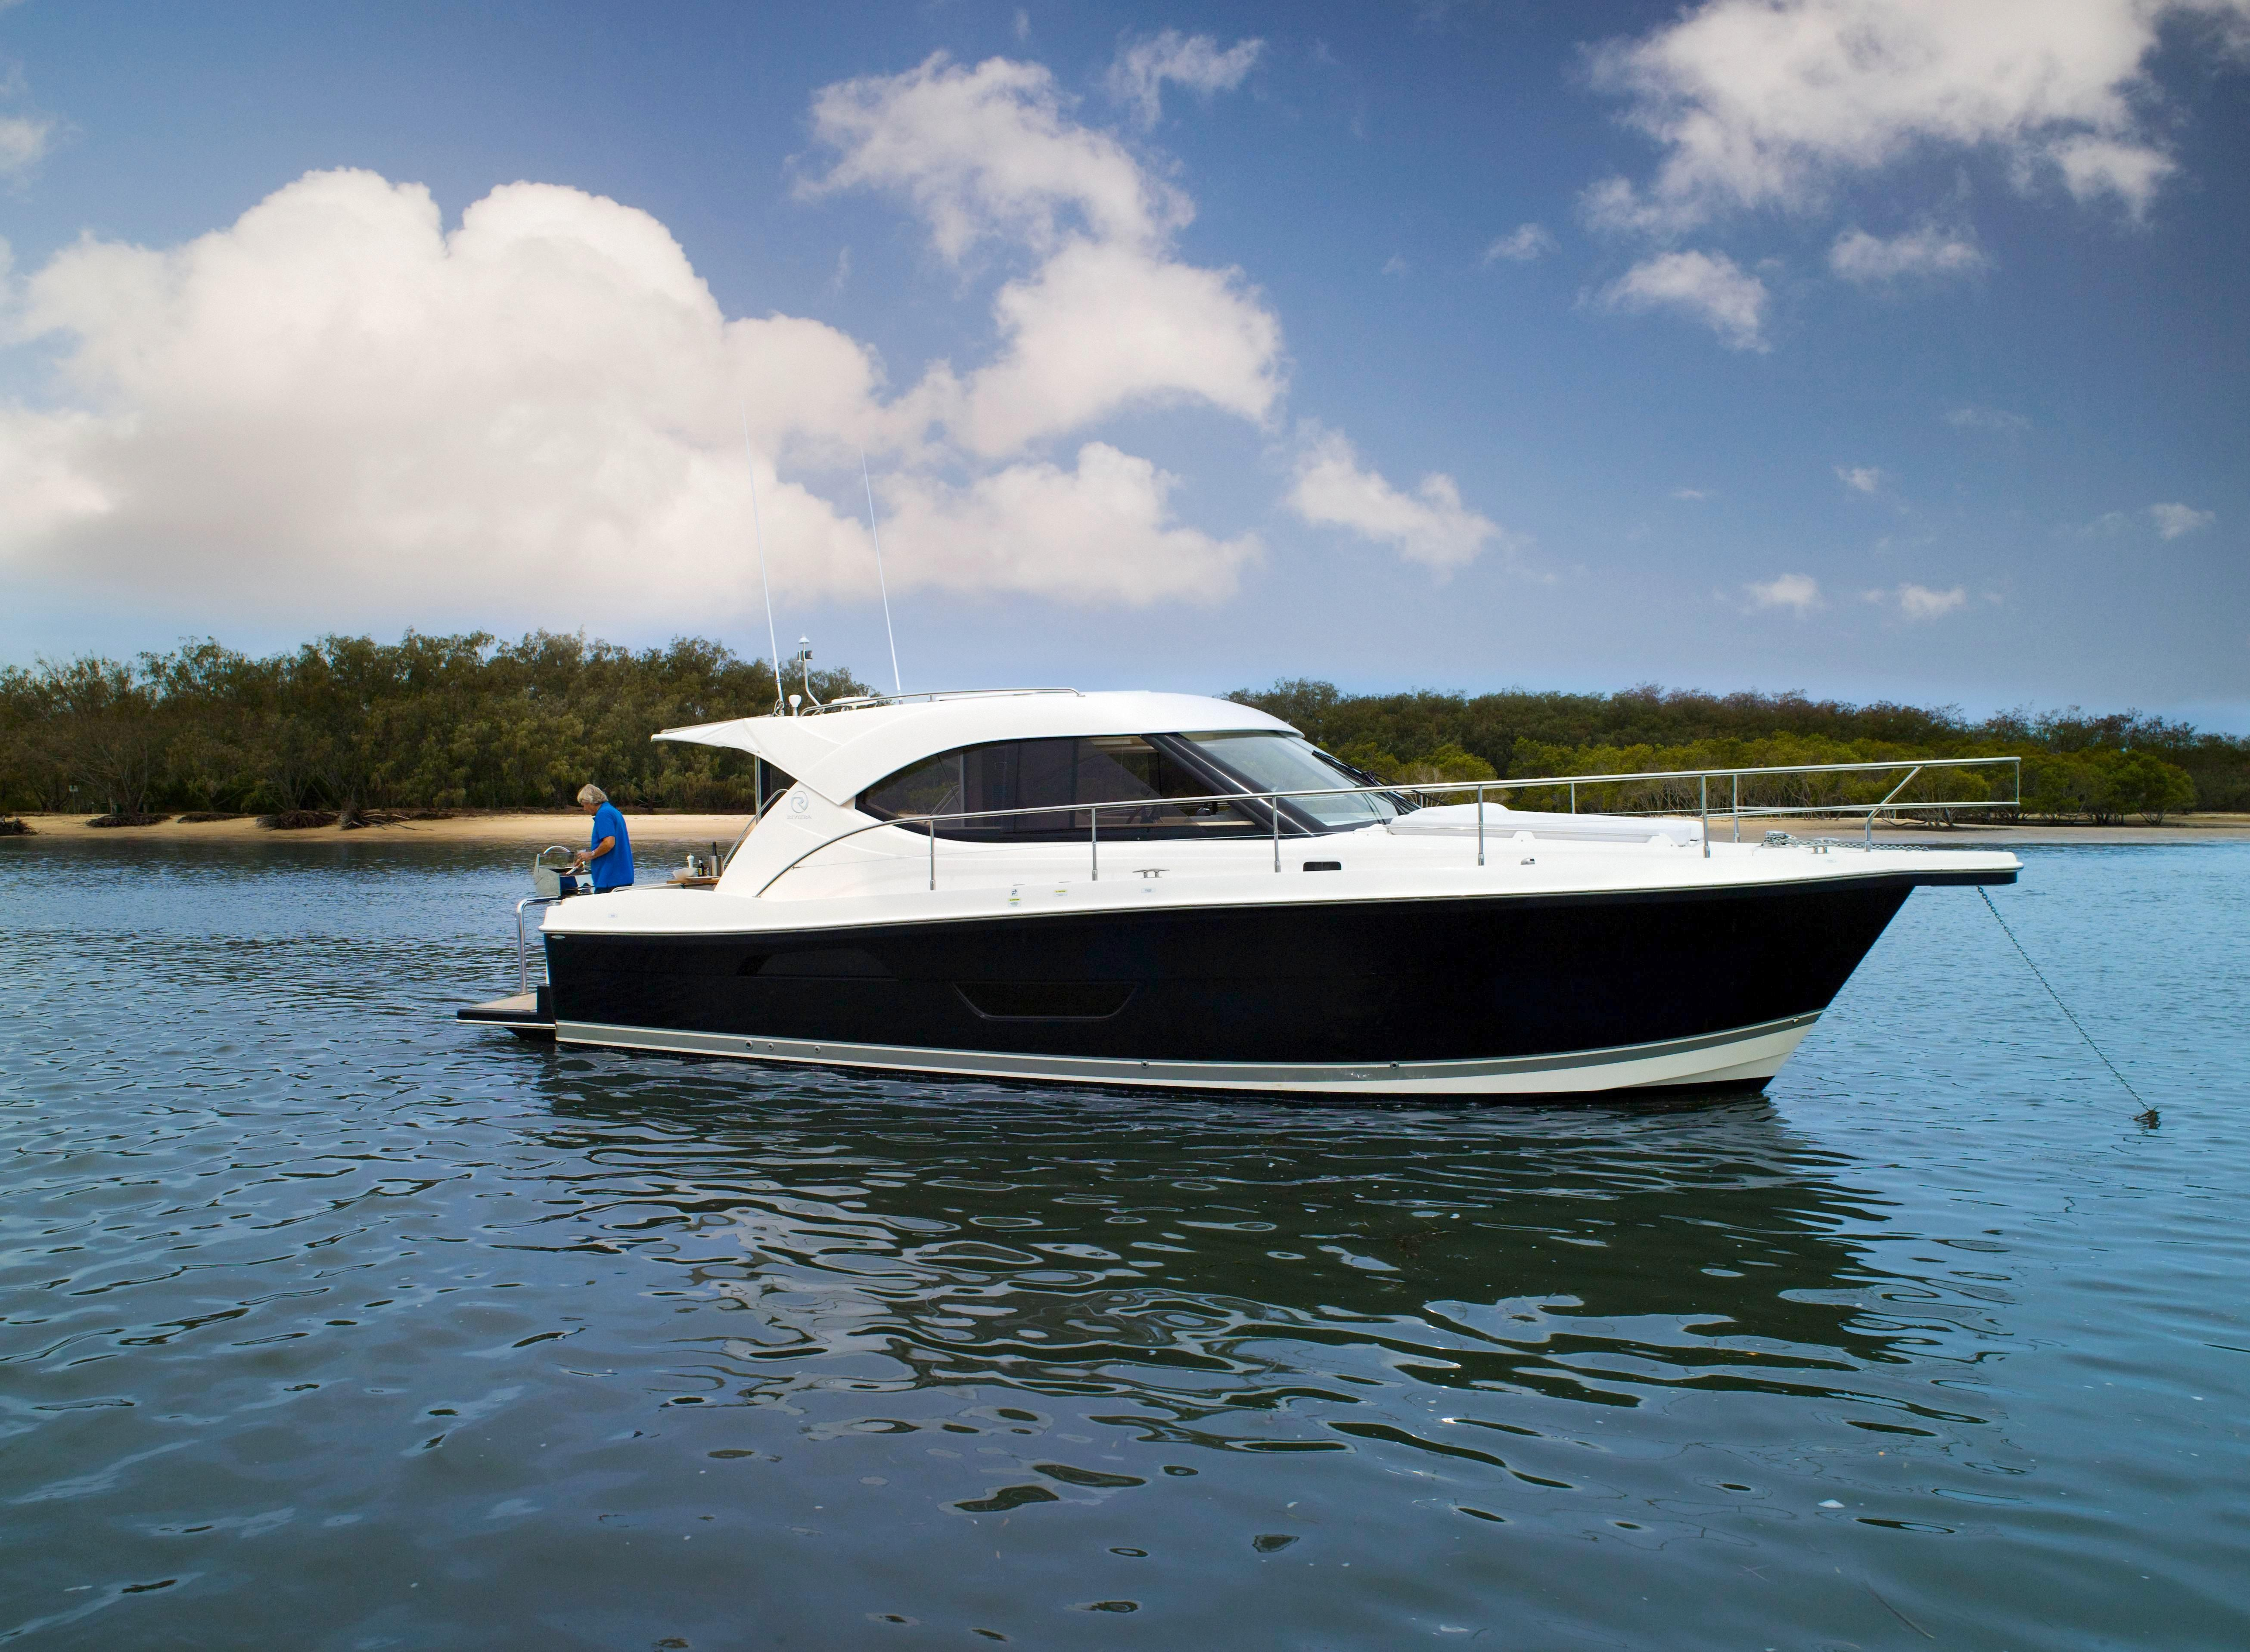 Midnight Express Boat For Sale >> 36 Riviera 2017 For Sale in Dania Beach, Florida, US | Denison Yacht Sales